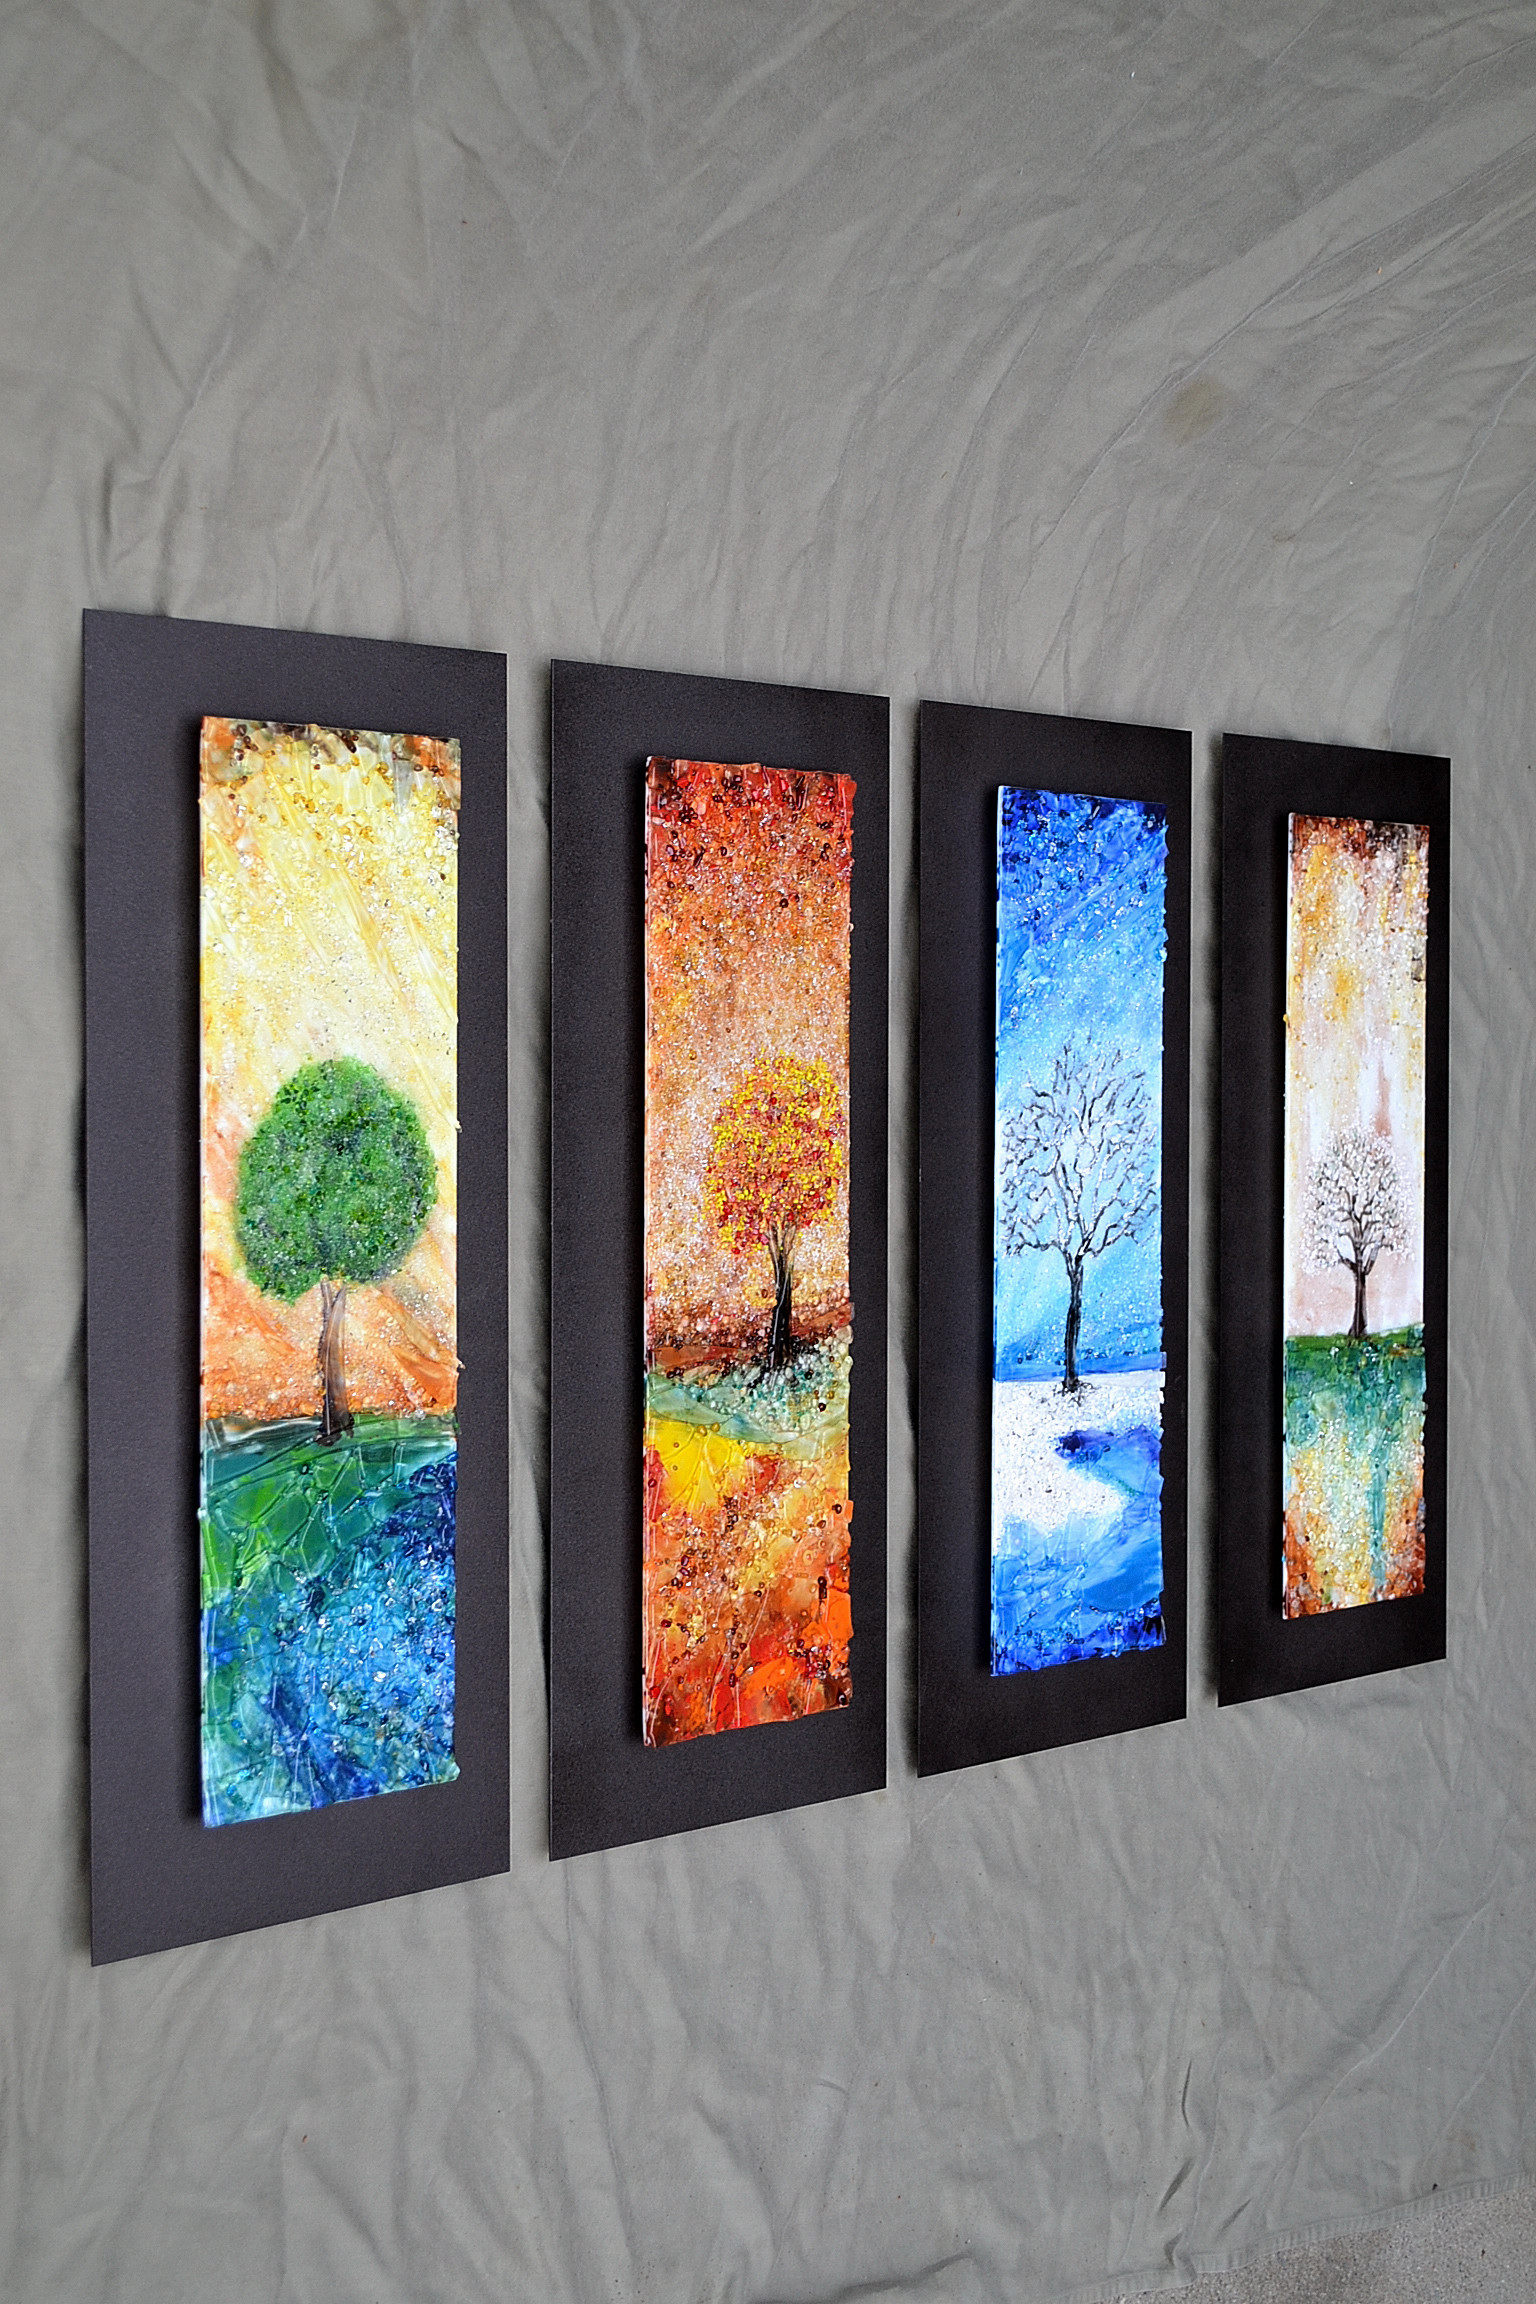 lucas krenzin  u2013 fused glass art  u00bb four seasons